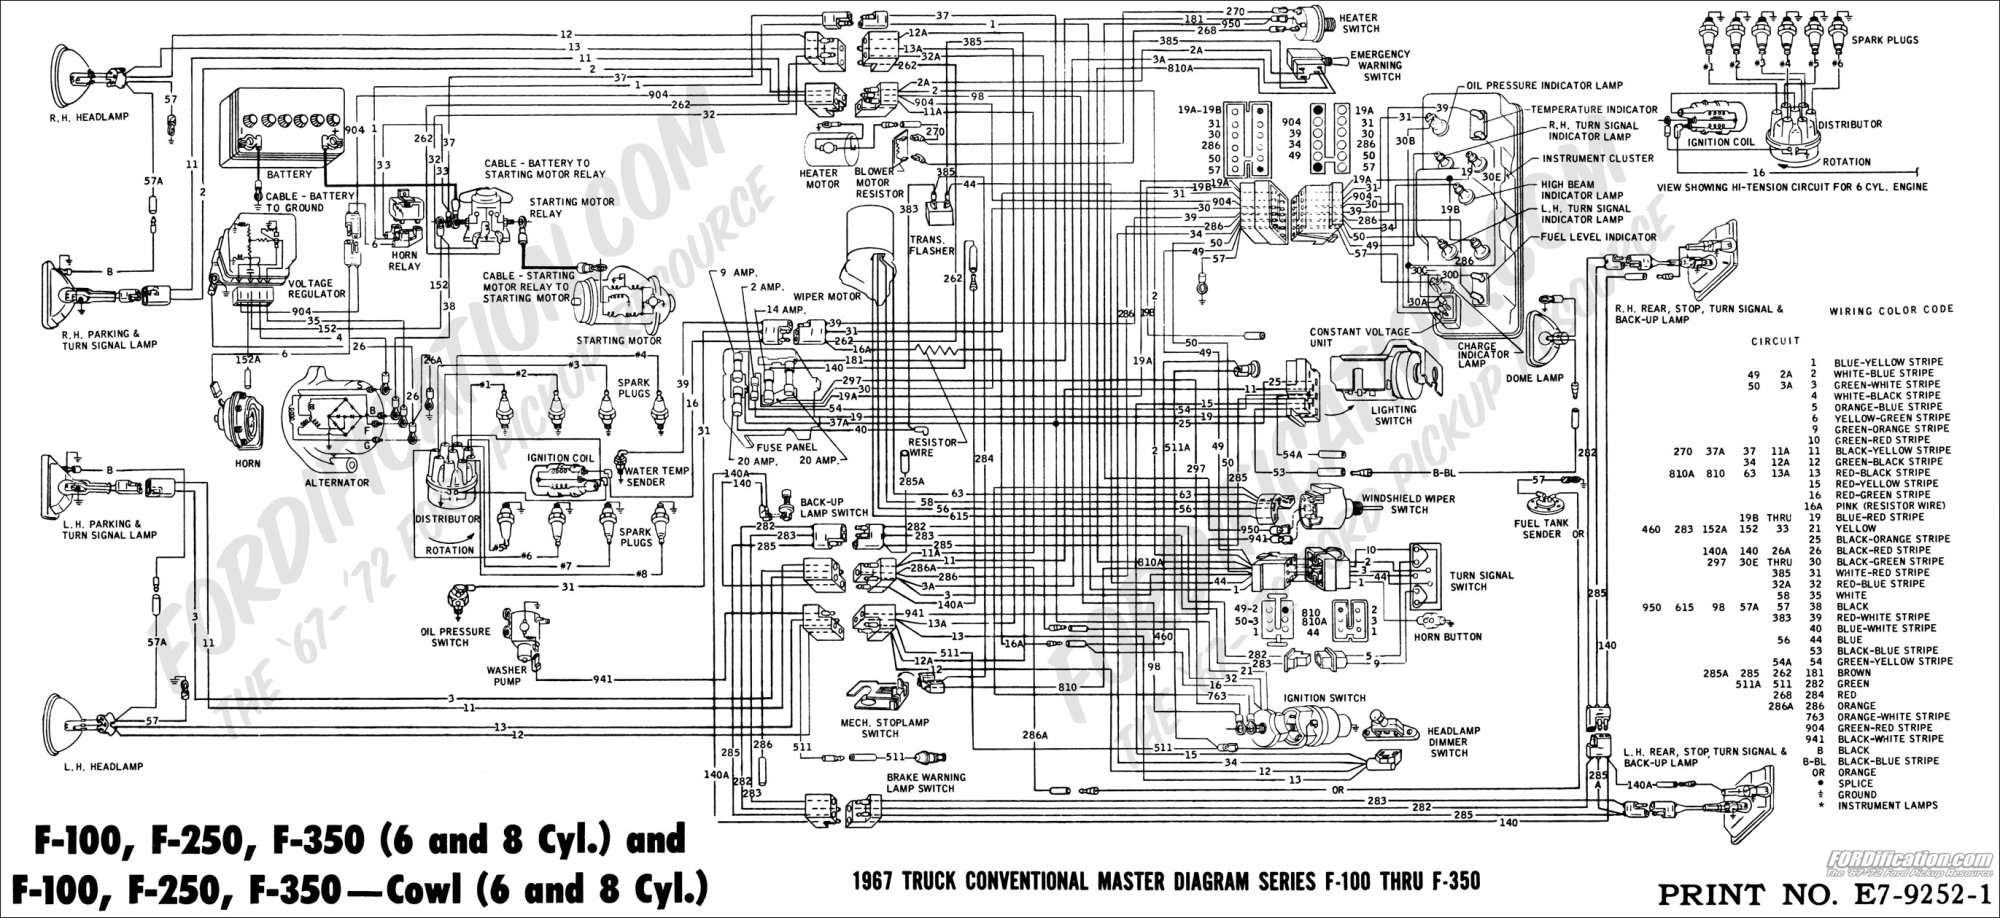 hight resolution of f150 wire diagram wiring diagram todays 1993 f150 wiring diagram 4x4 ford wiring diagram 98 f150